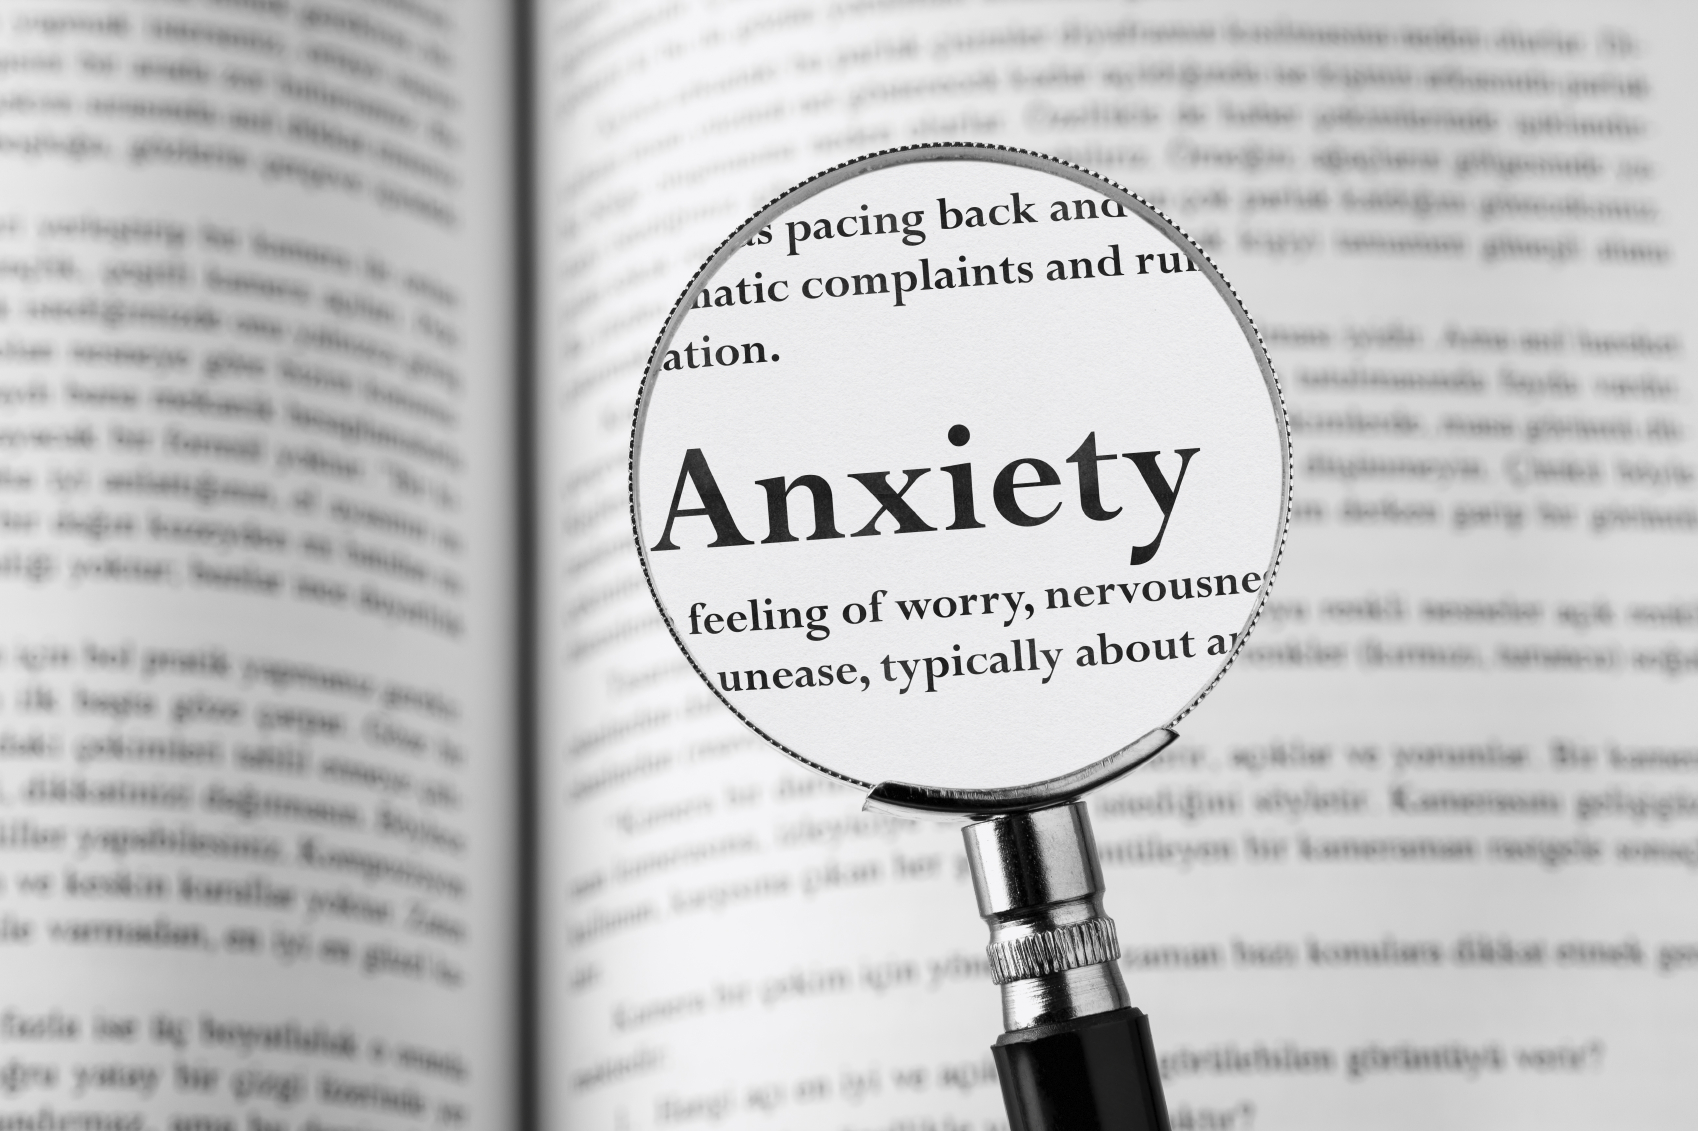 Managing worry in generalized anxiety disorder - Harvard